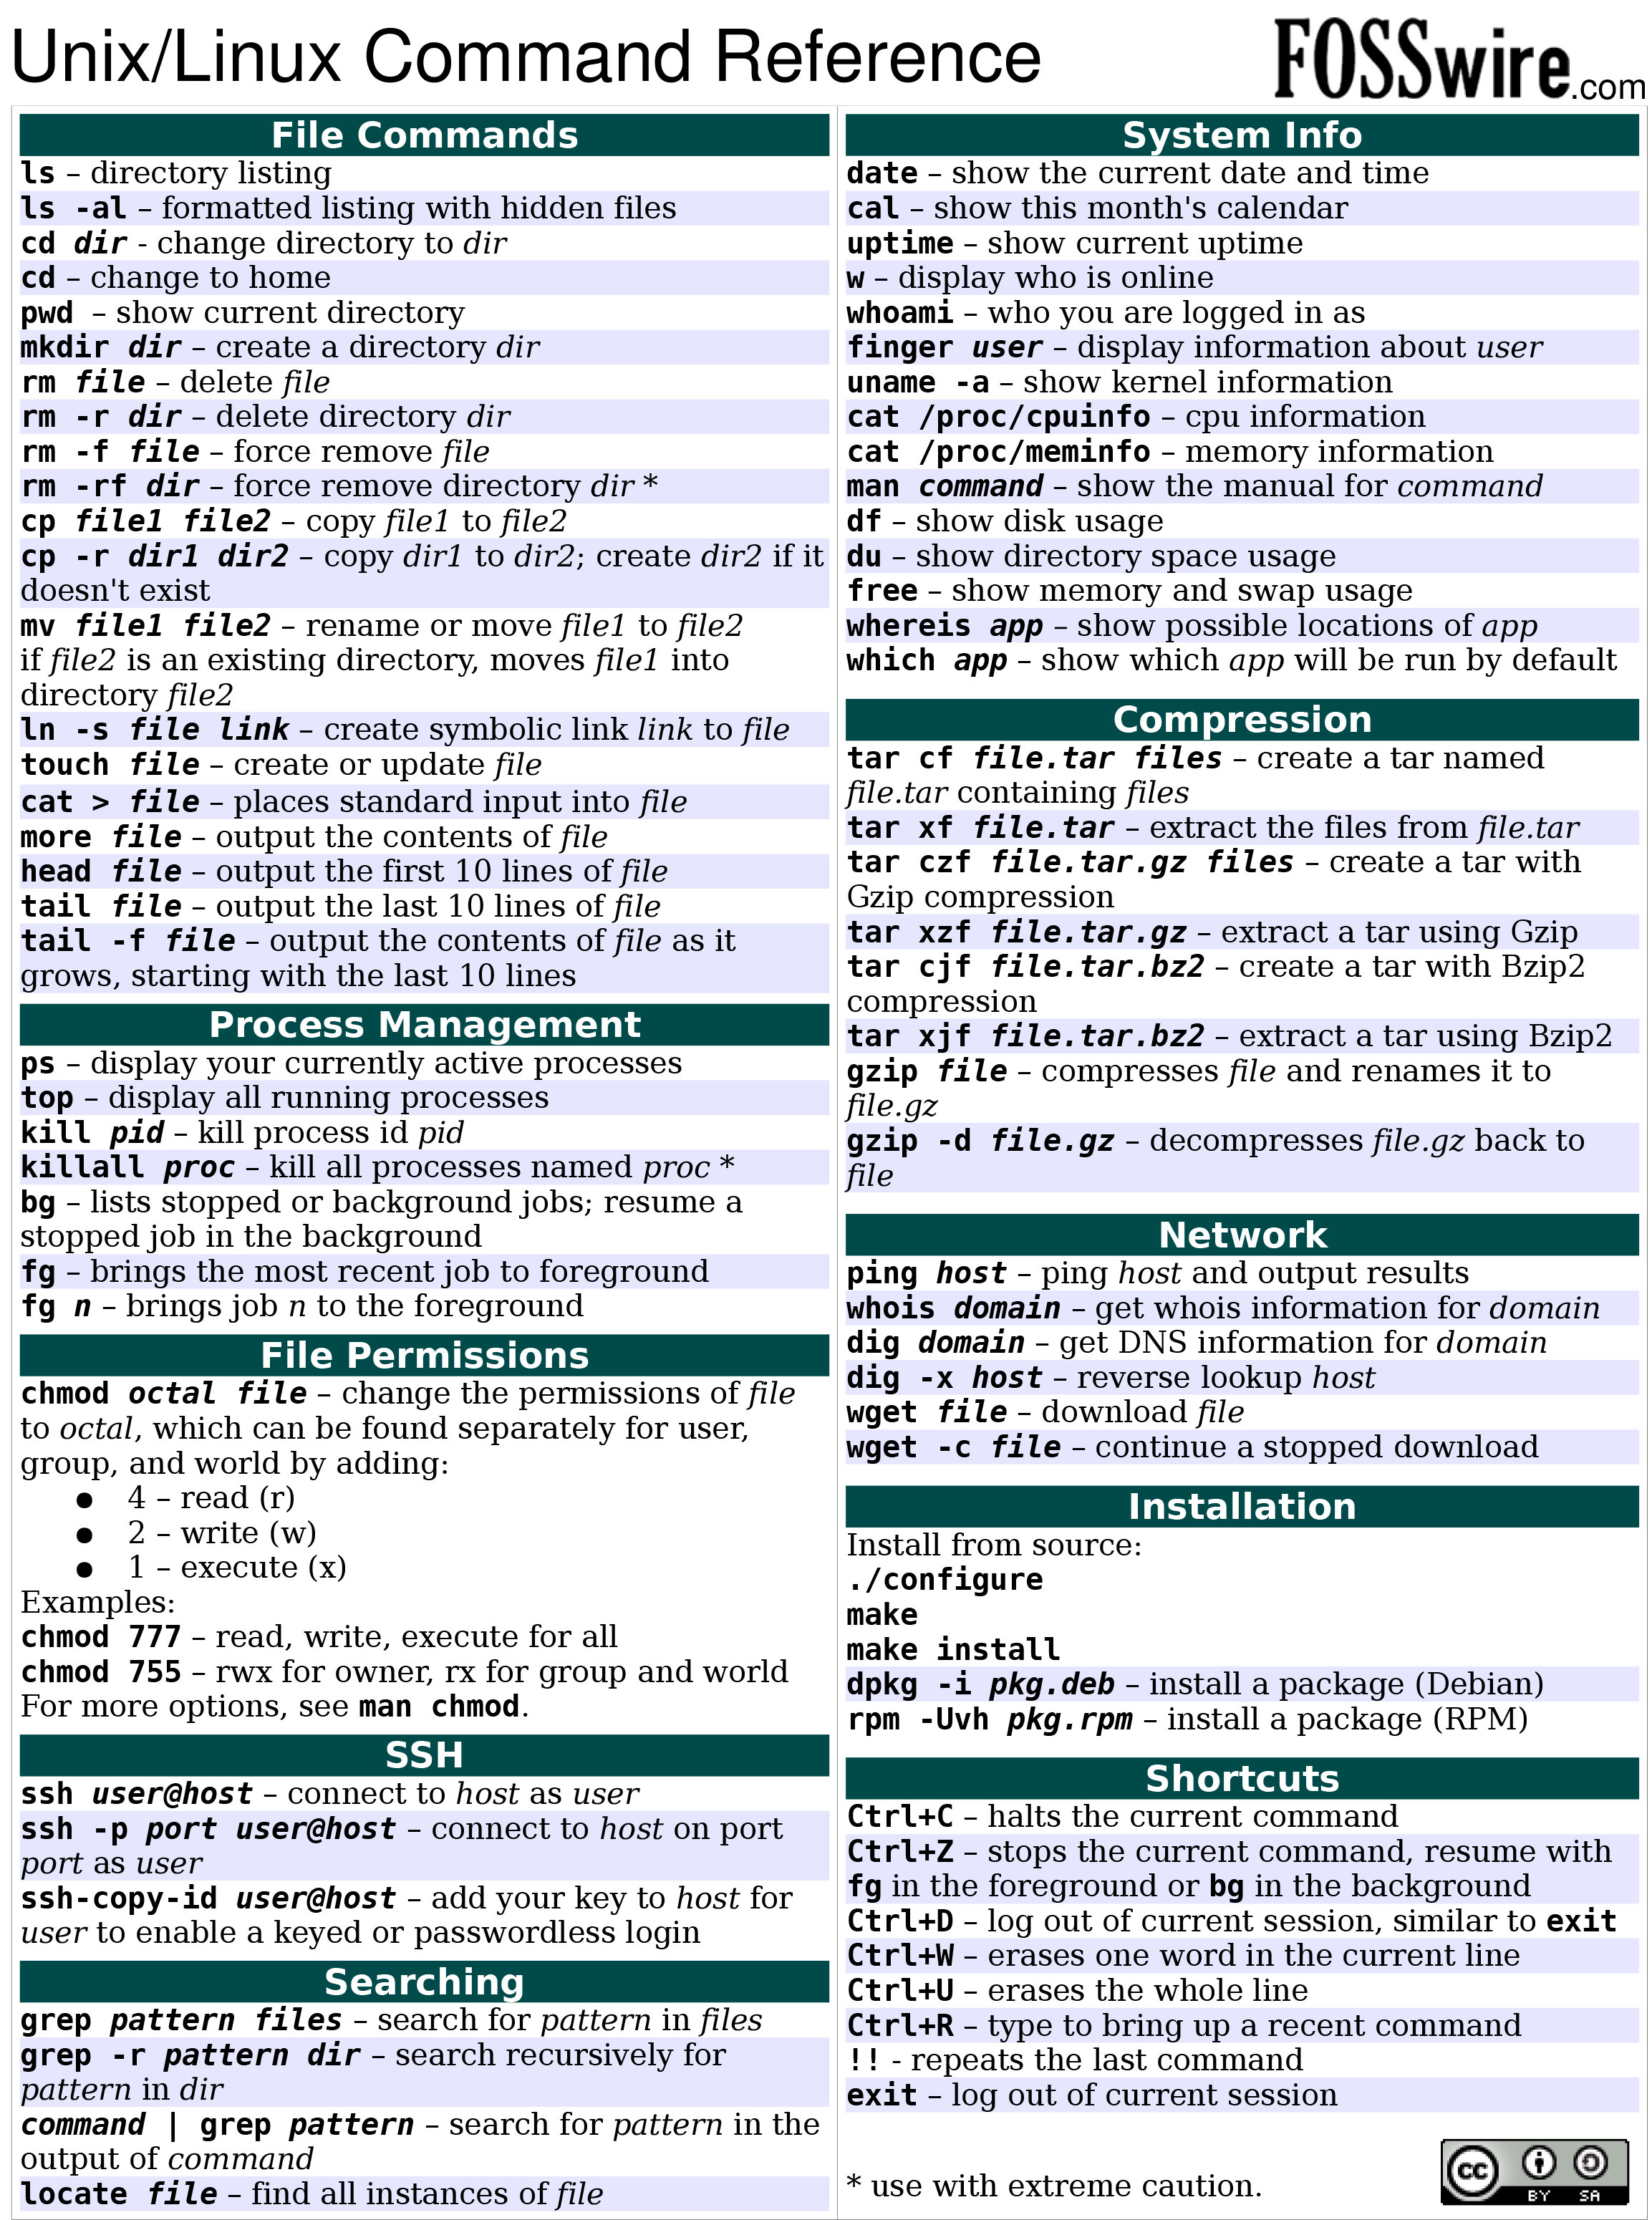 windows command line reference manual